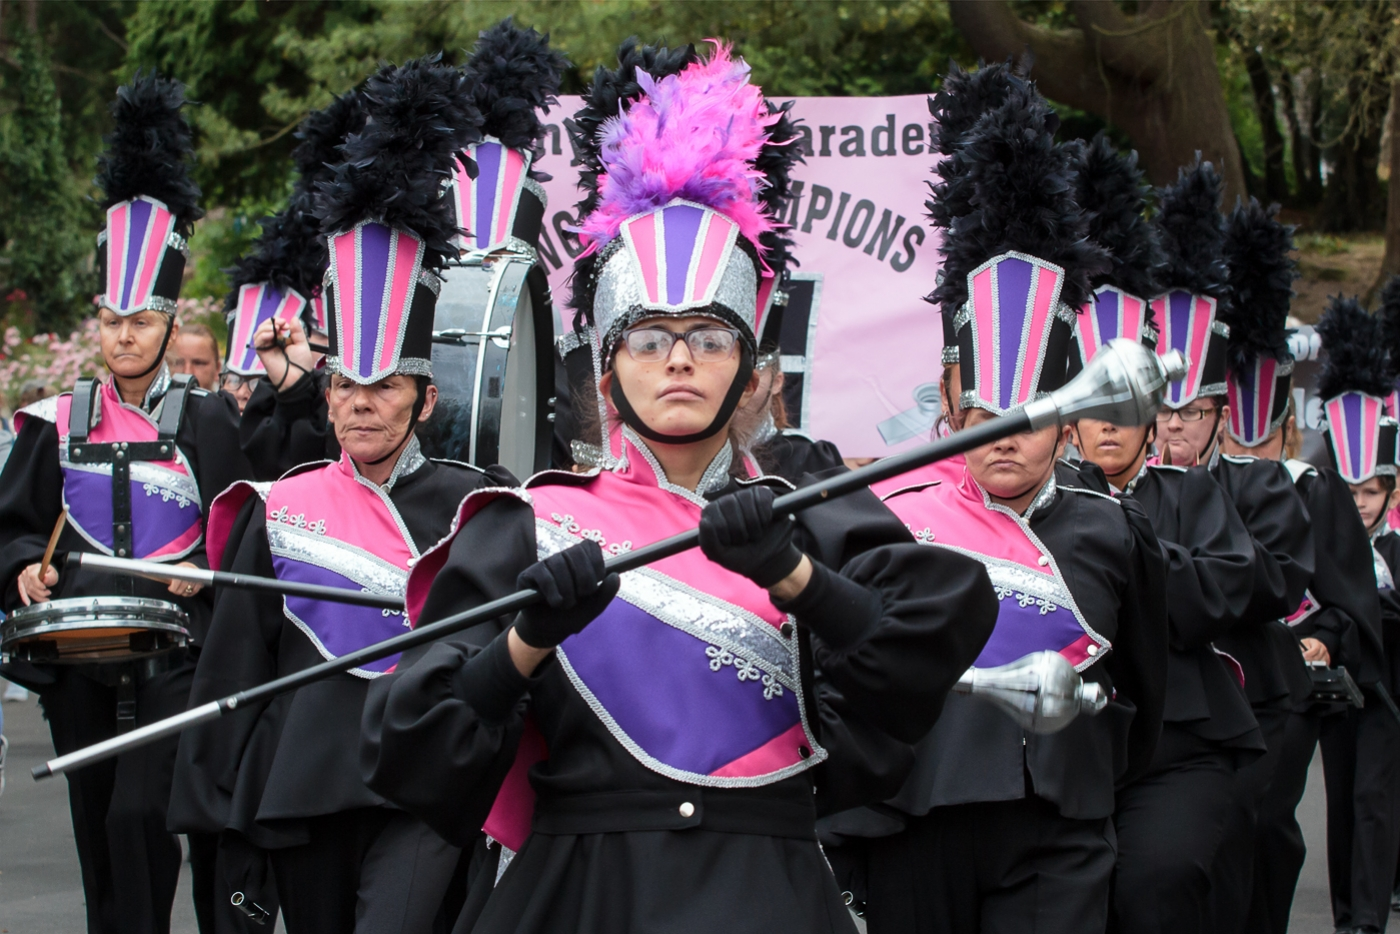 penywaun-paraders-by-lesley-newcombe